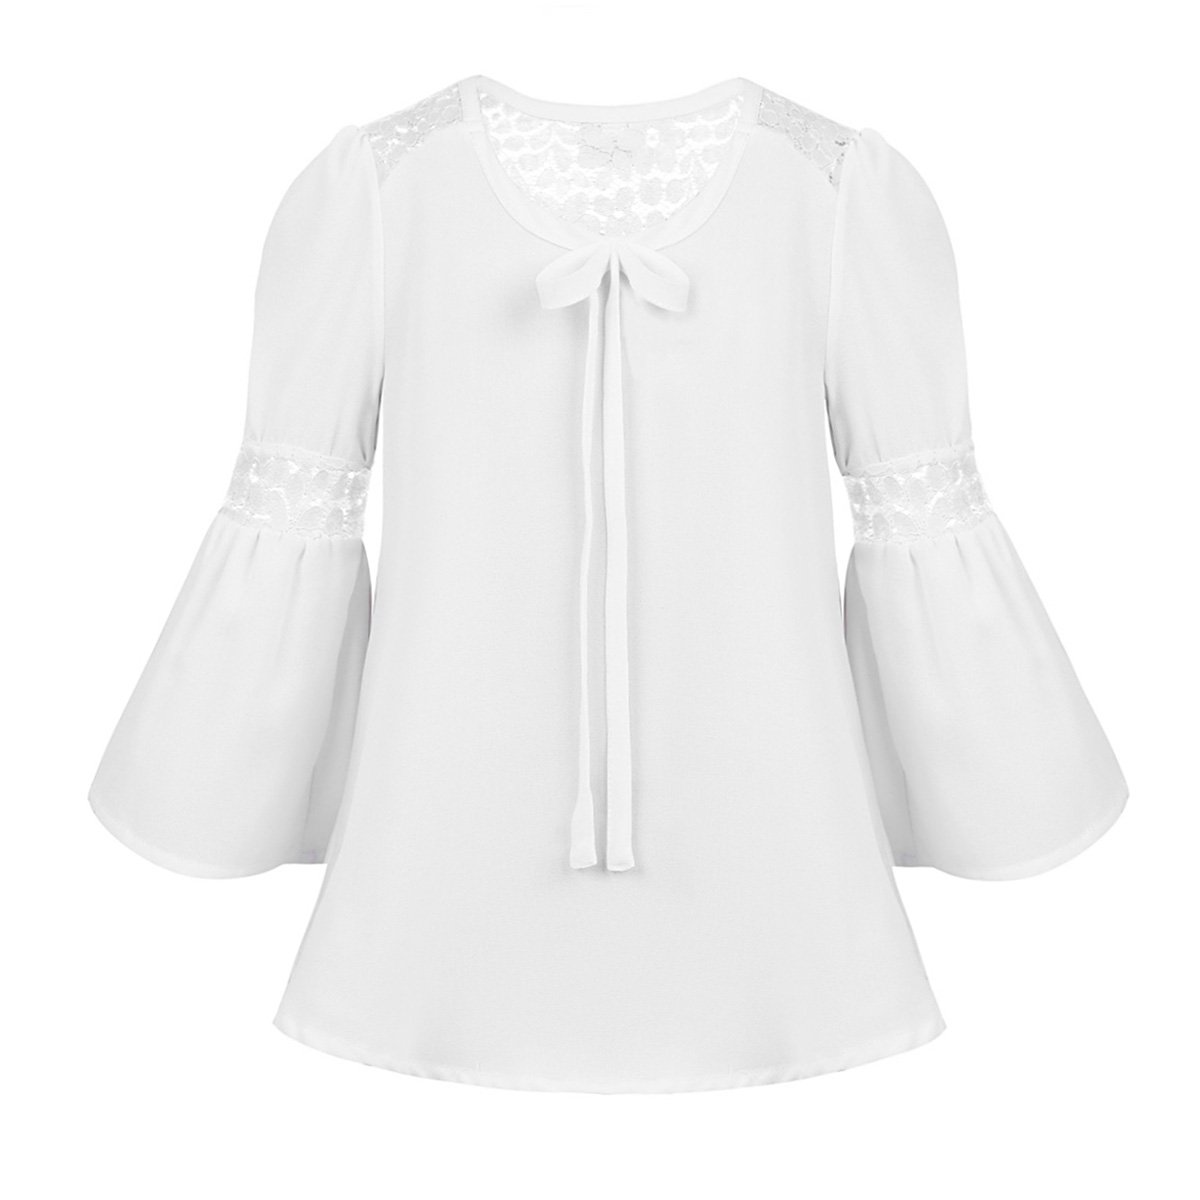 Agoky Kids Girls 3/4 Bell Sleeves Lace Splice Top Blouse Daily Wear Spring Summer Autumn White 4-5